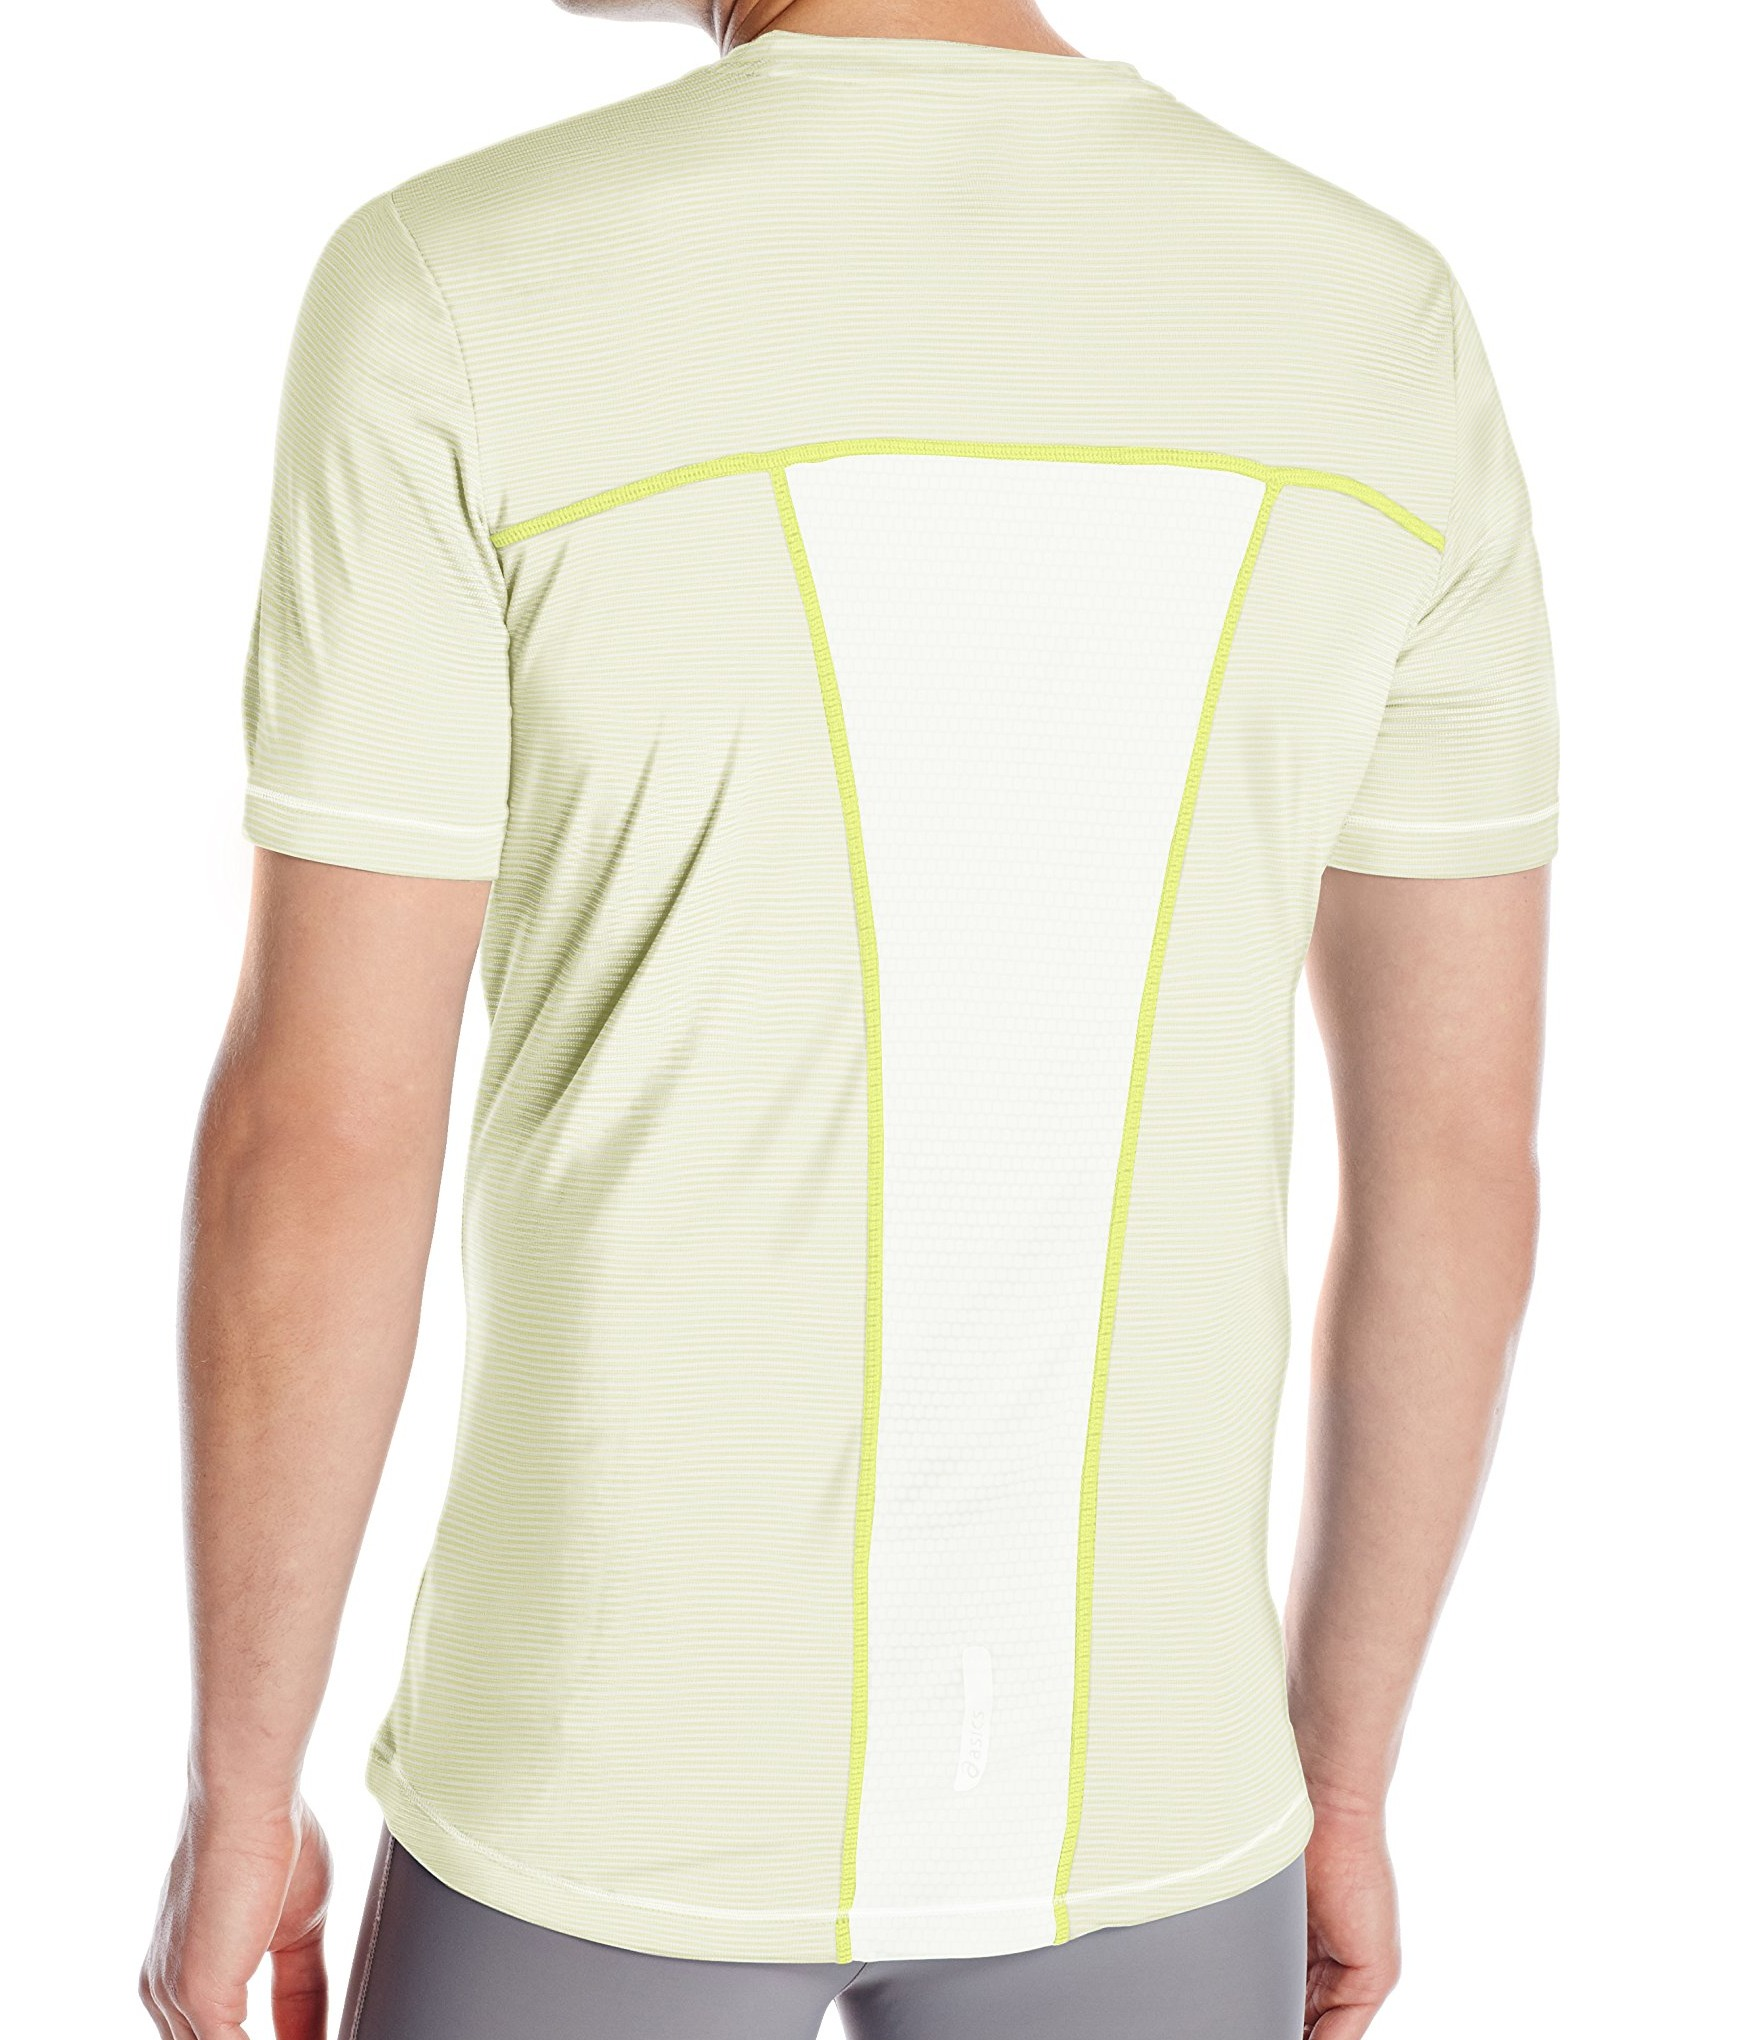 Asics-NEW-Striped-Mens-Shosha-Performance-Short-Sleeve-Tee-T-Shirt-40 thumbnail 8